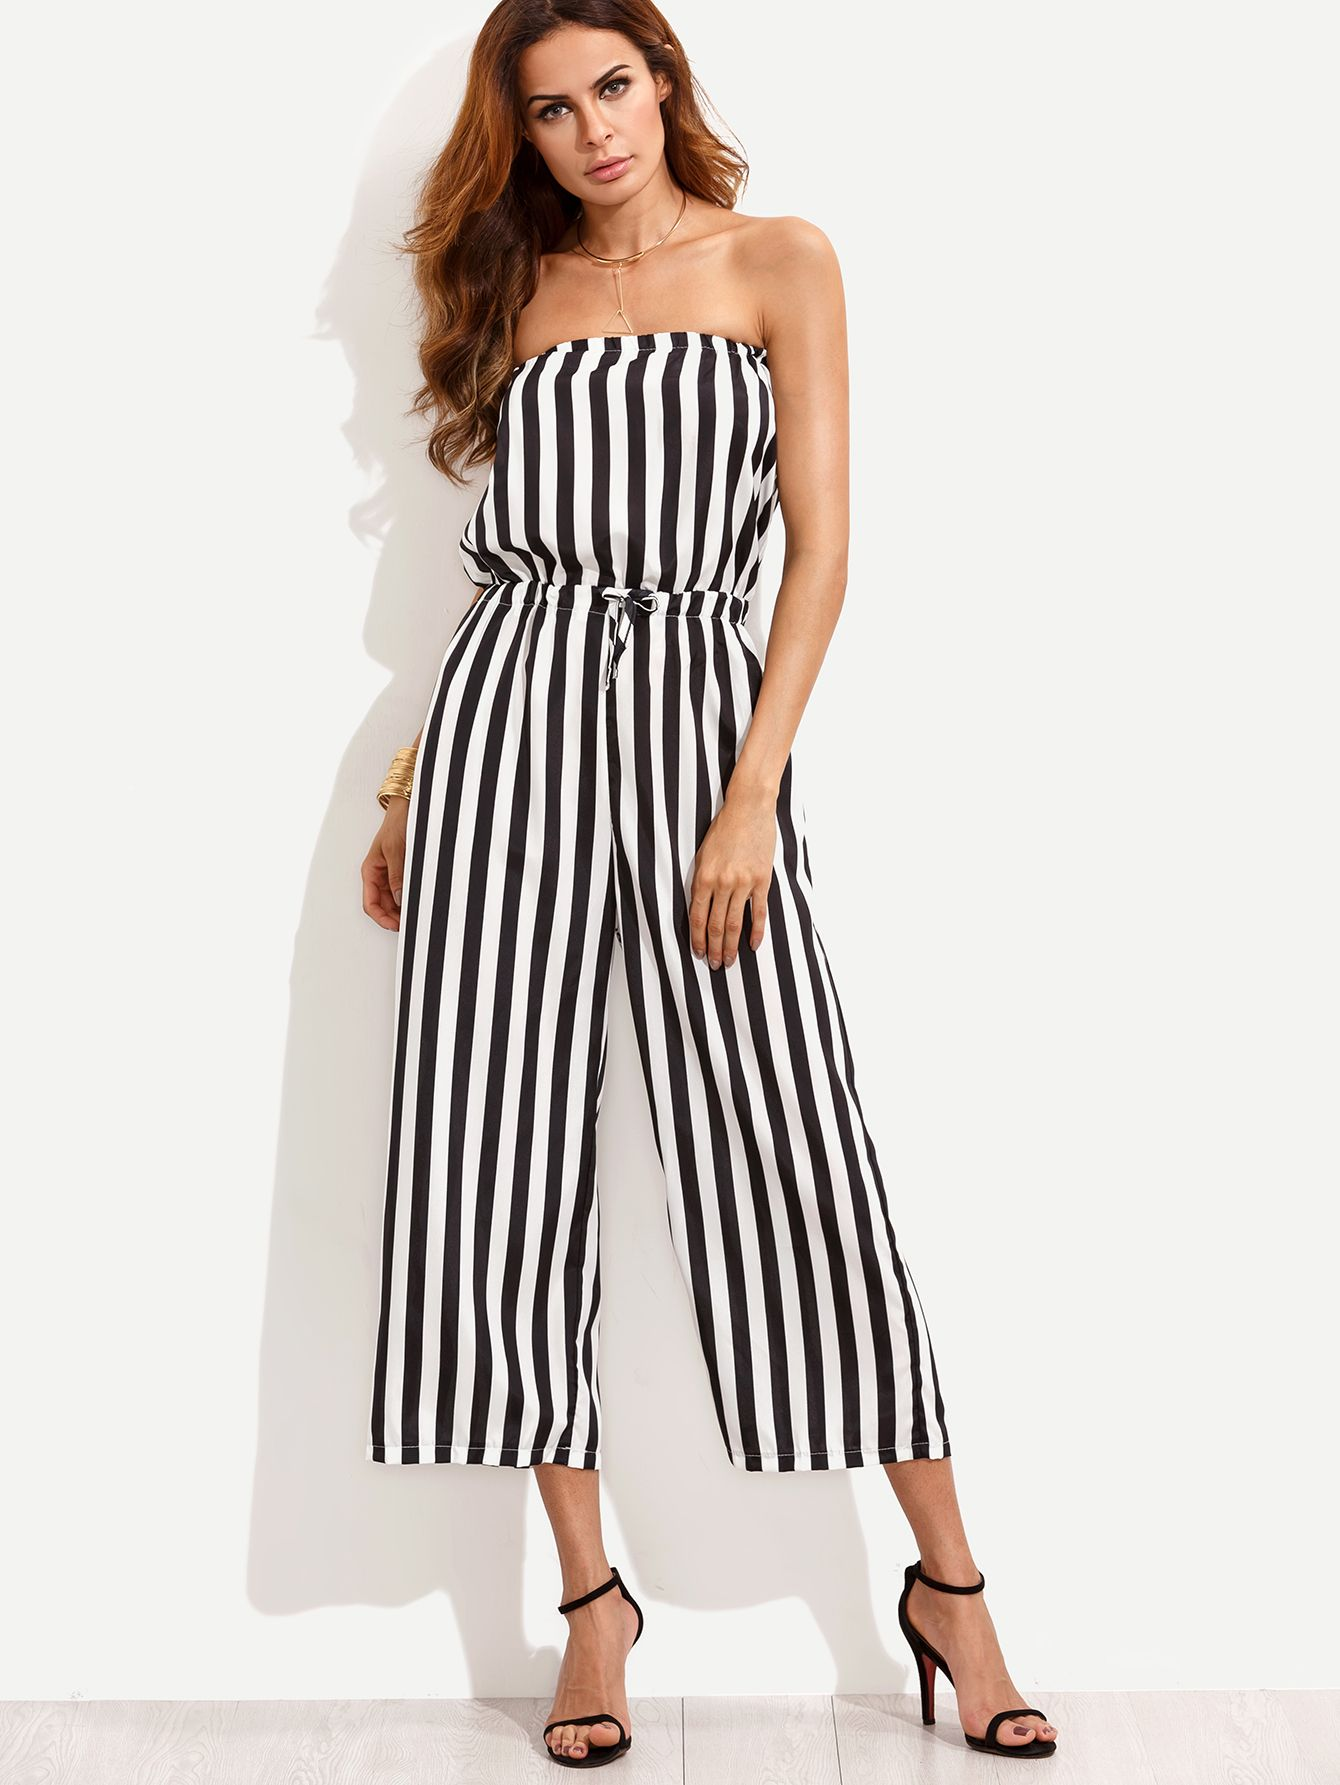 2d5f429082f Black White Vertical Striped Drawstring Bandeau Jumpsuit -SheIn(Sheinside)